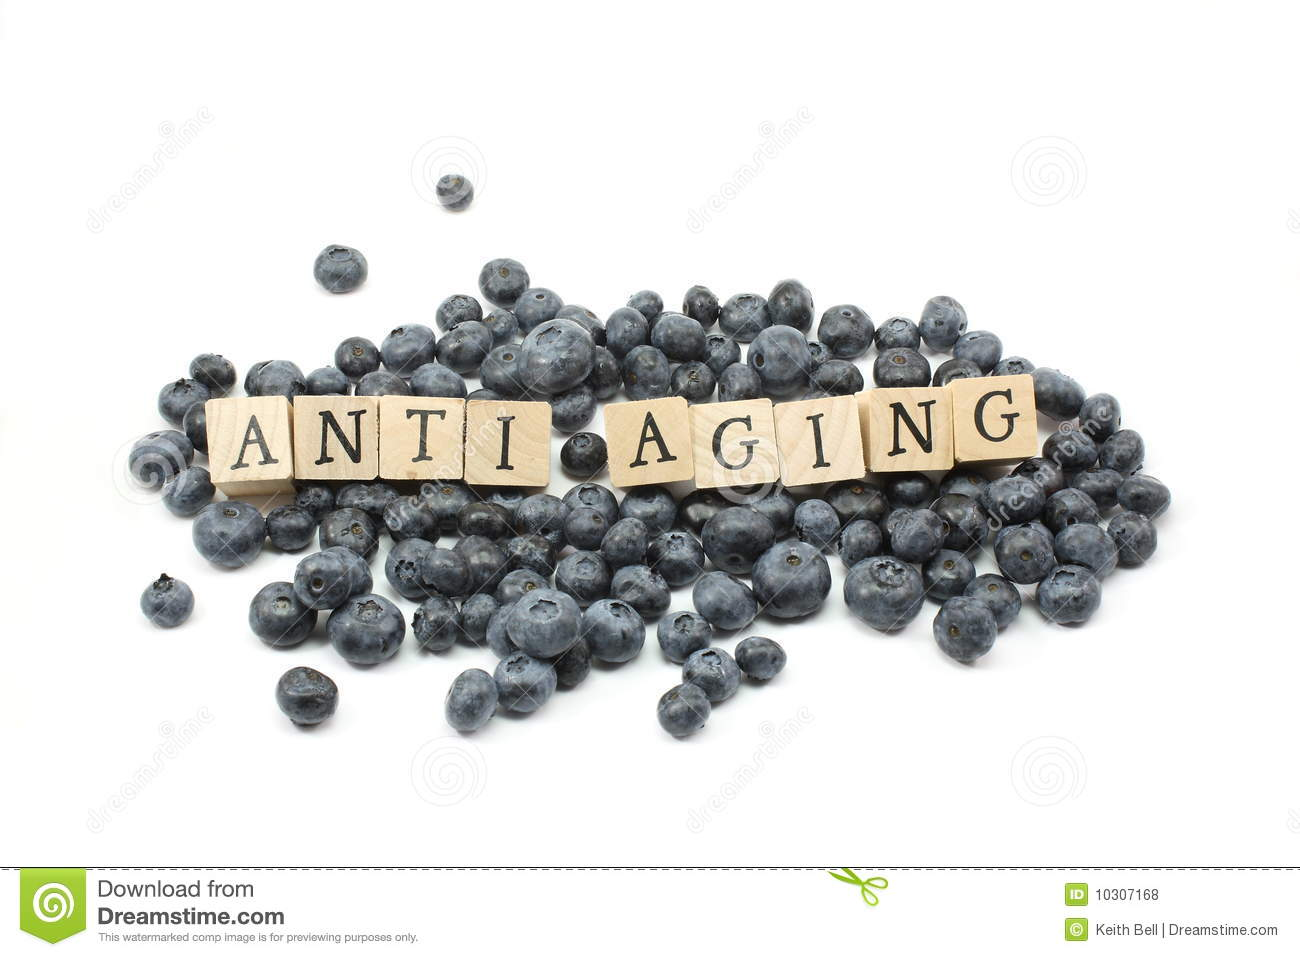 Anti Aging Blueberries Royalty Free Stock Photos.